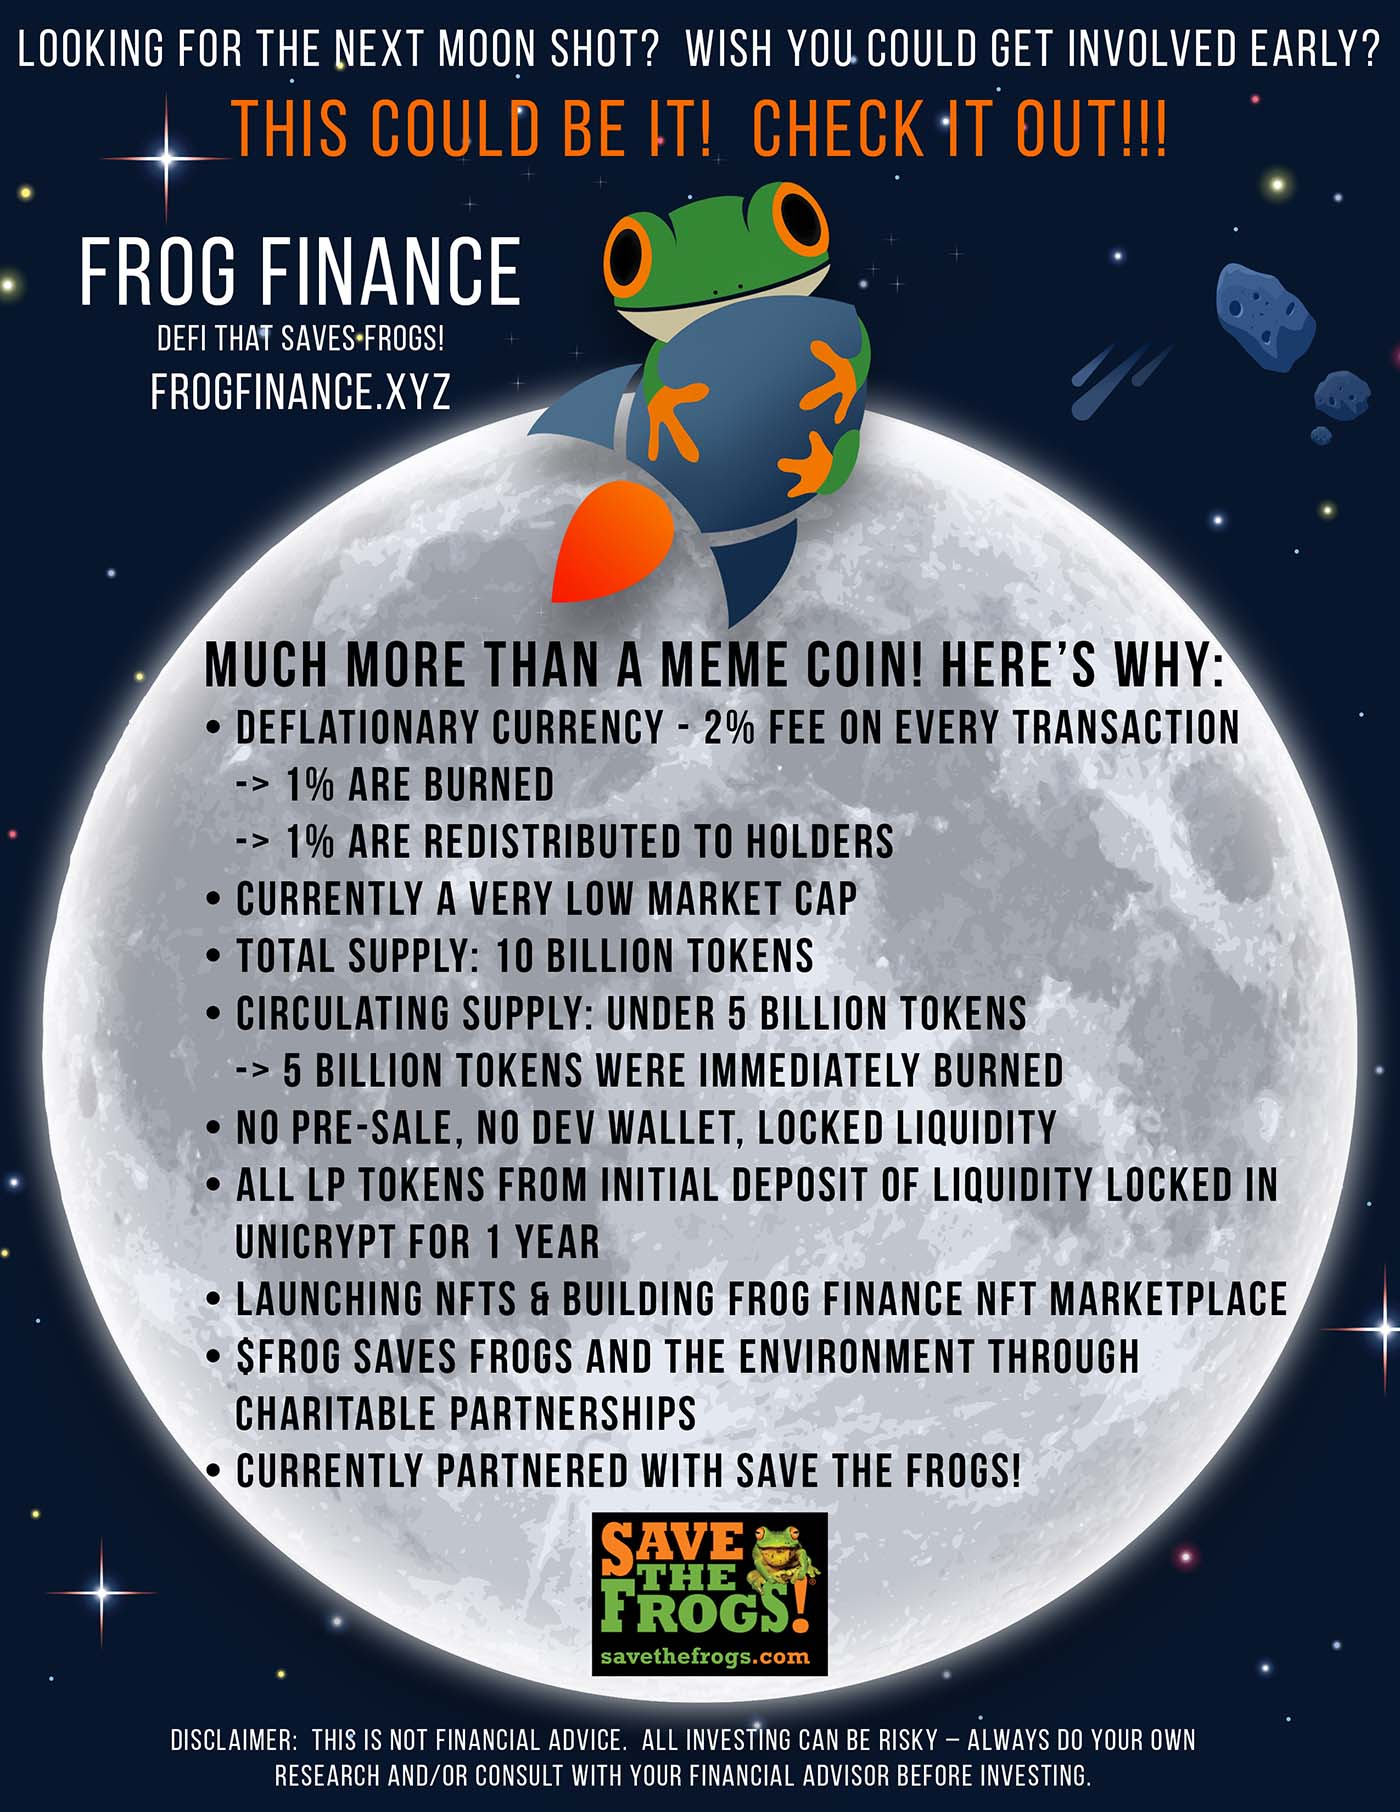 Frog Finance Flyer - Save The Frogs